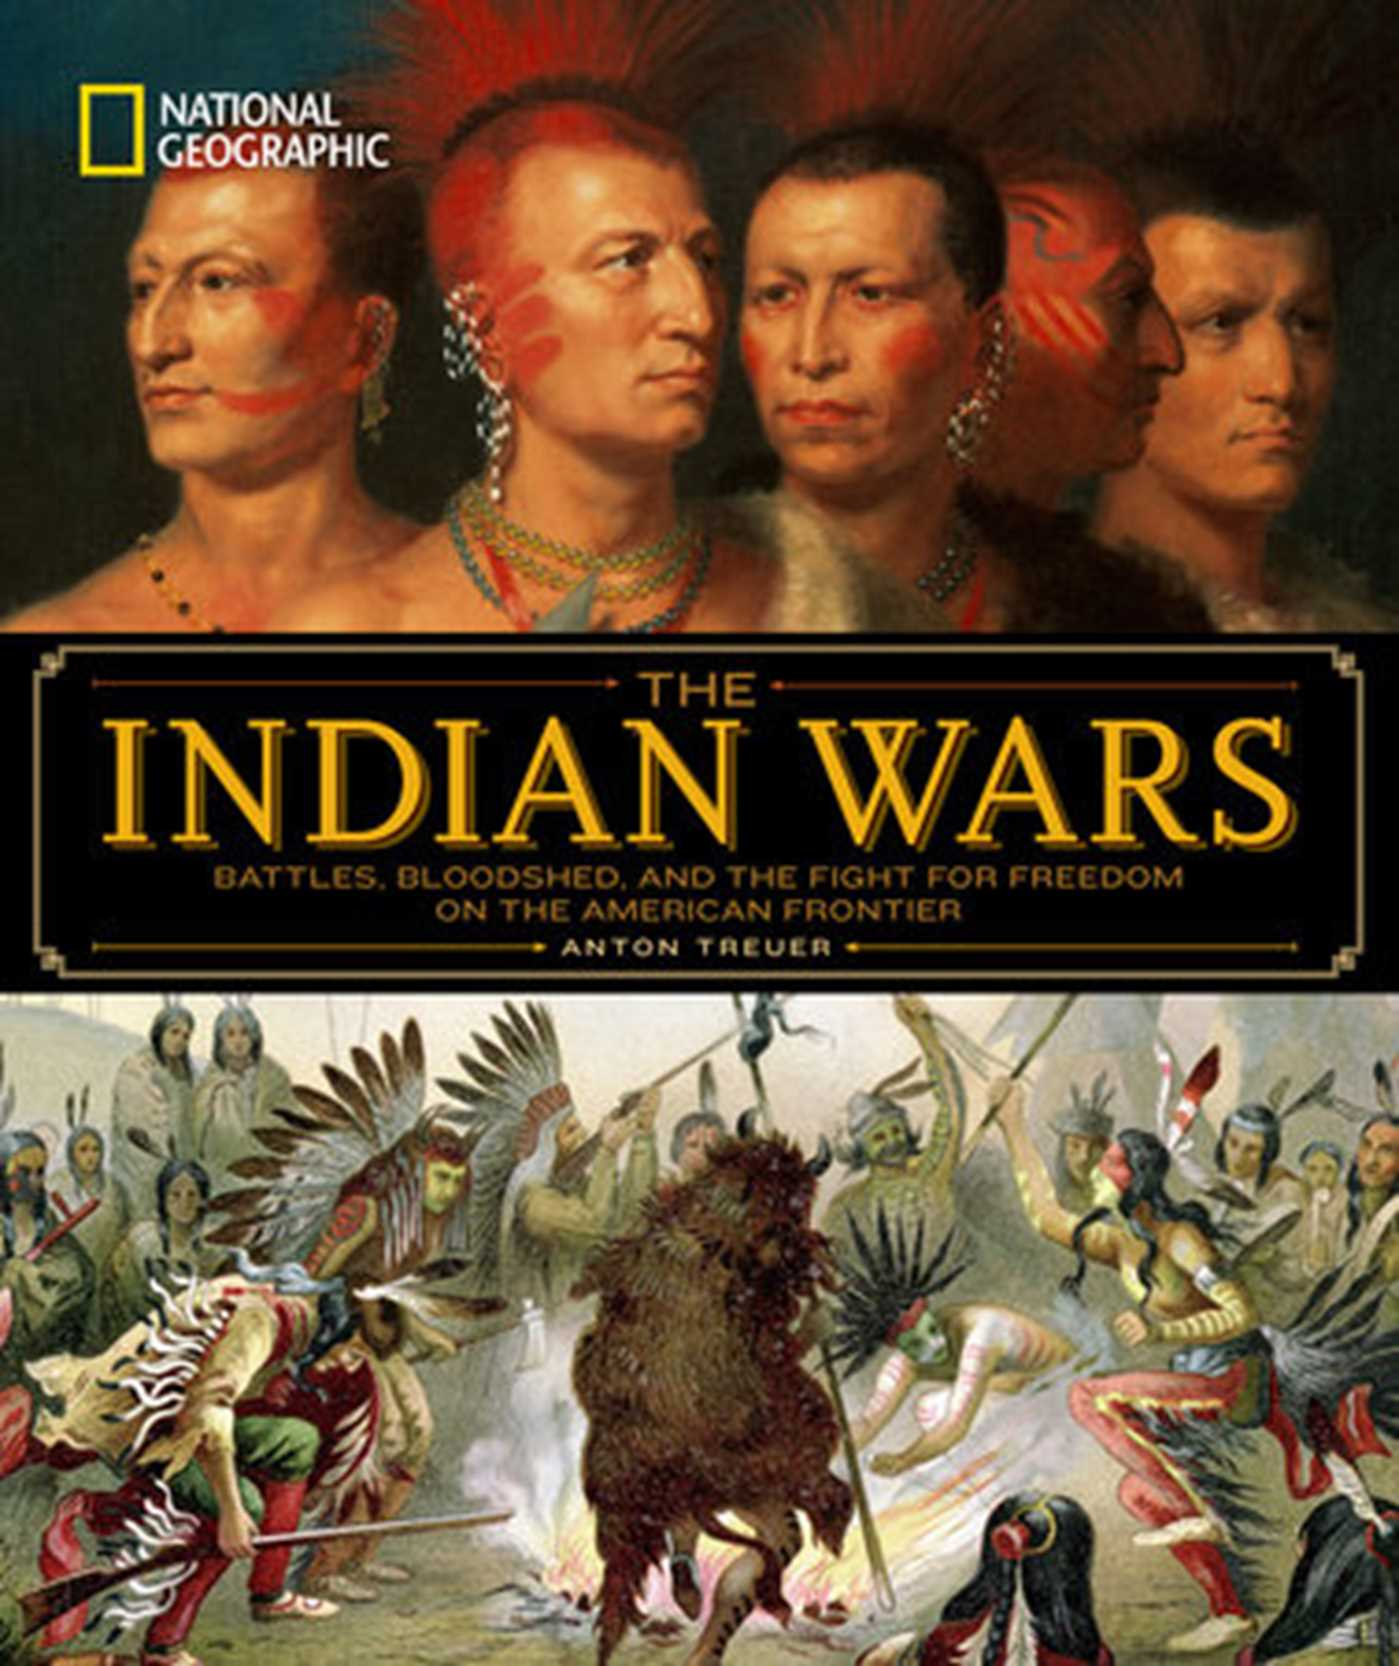 National geographic the indian wars 9781426217432 hr